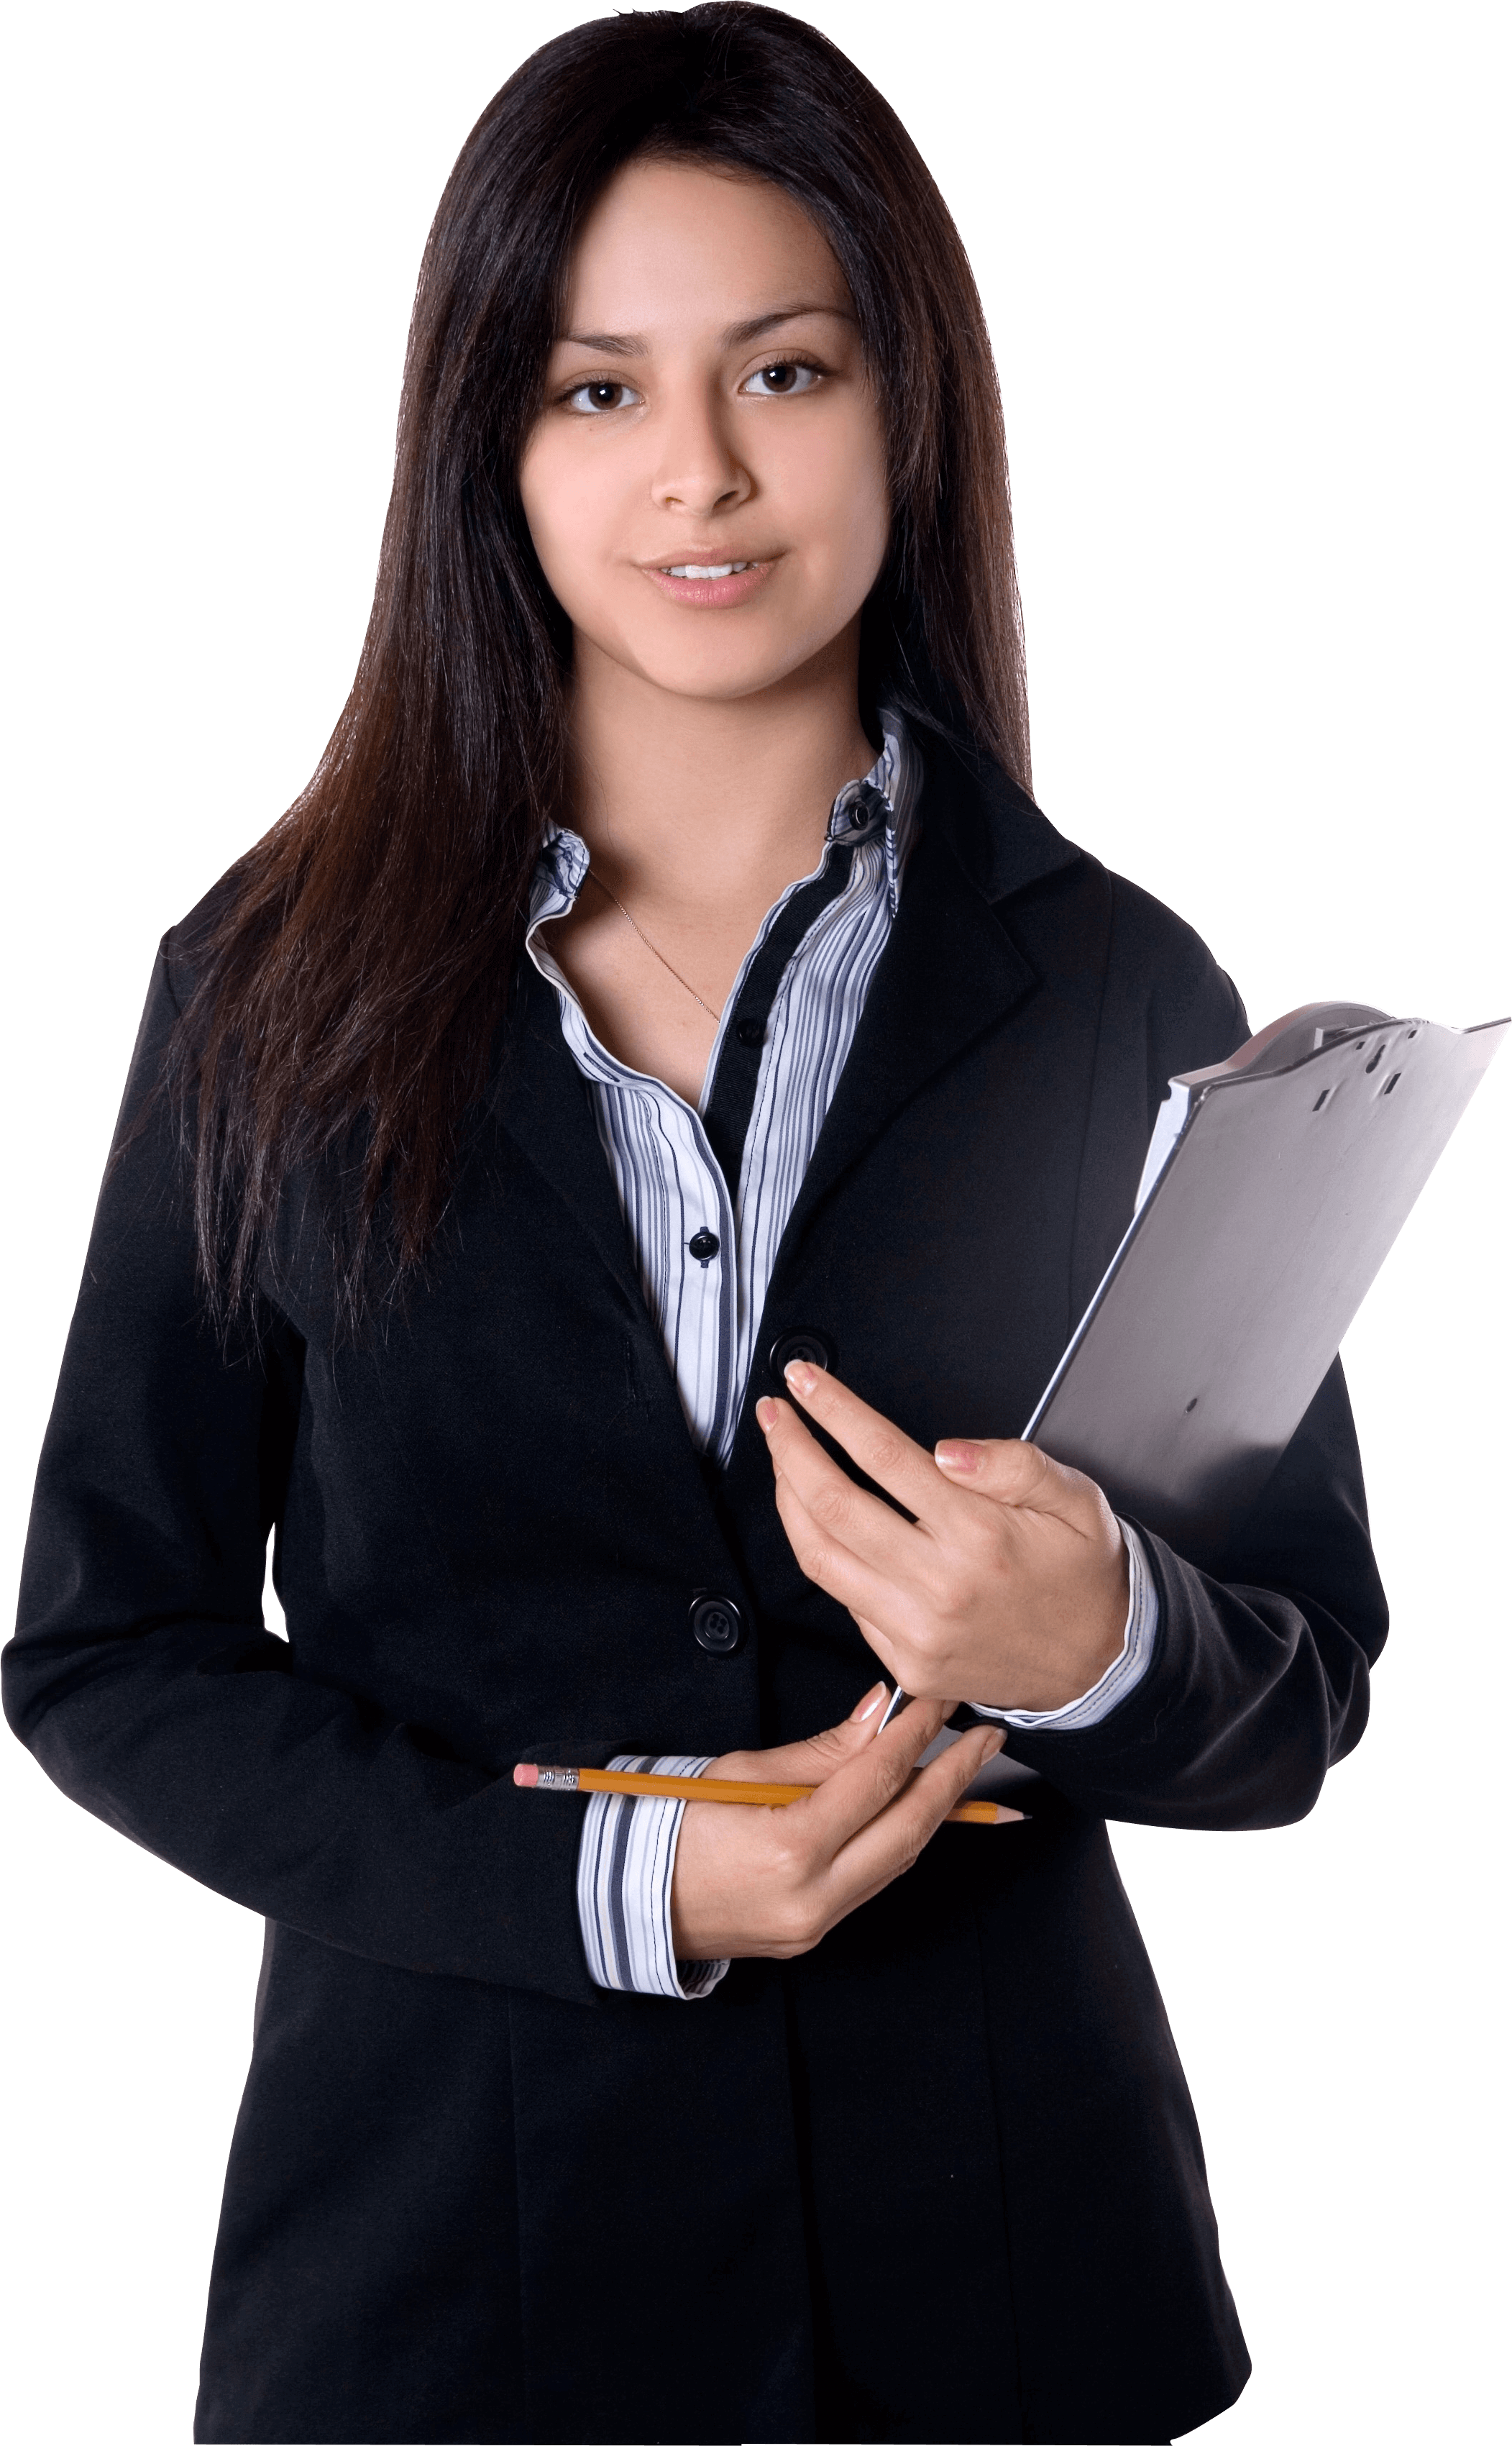 Business woman png. Girl image all